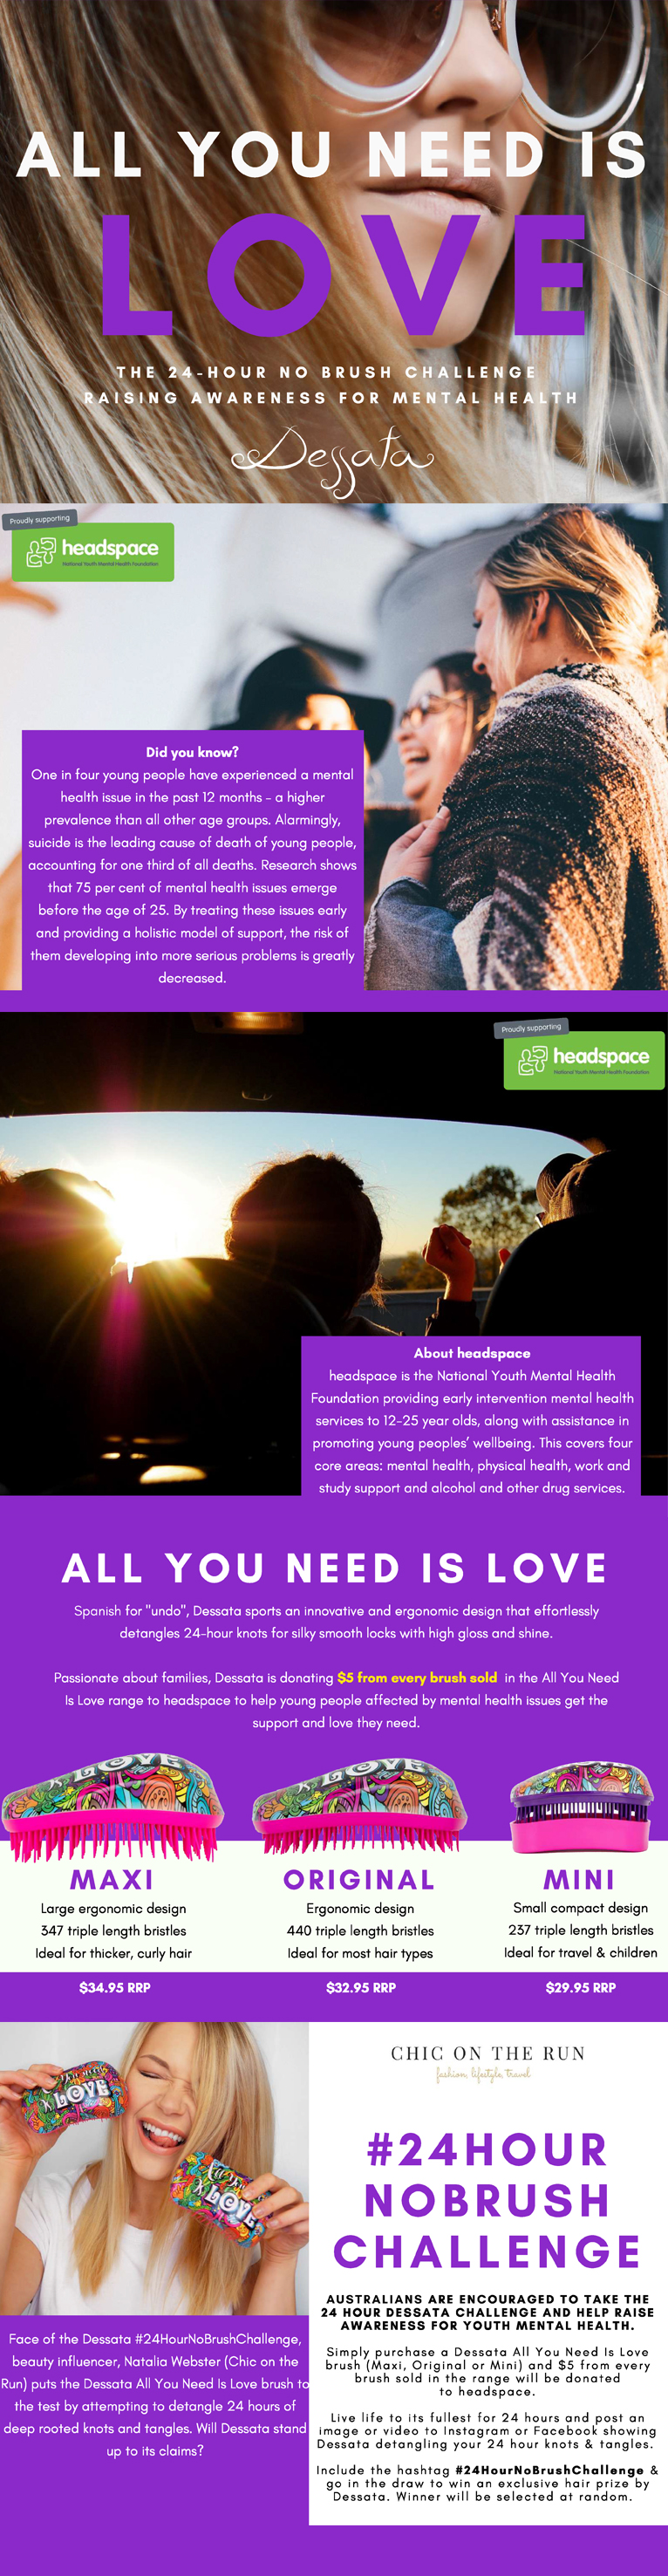 no-brush-challenge.jpg